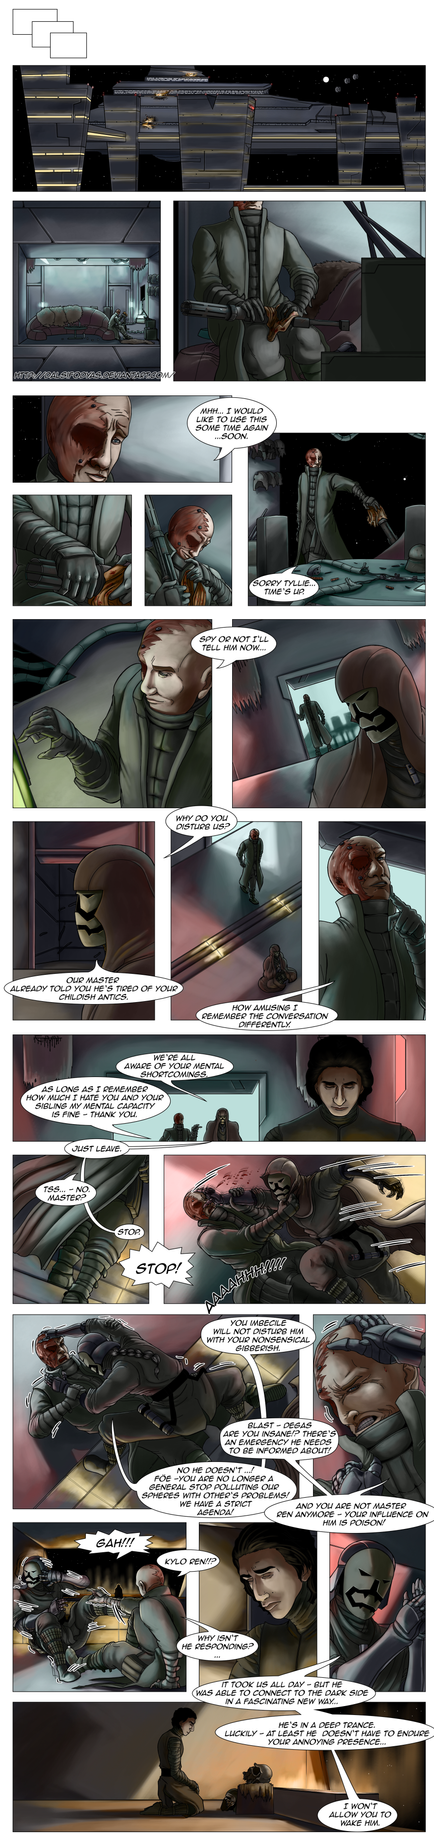 Star Wars - First Order Tales - The Invasion 21 by DalSifoDyas